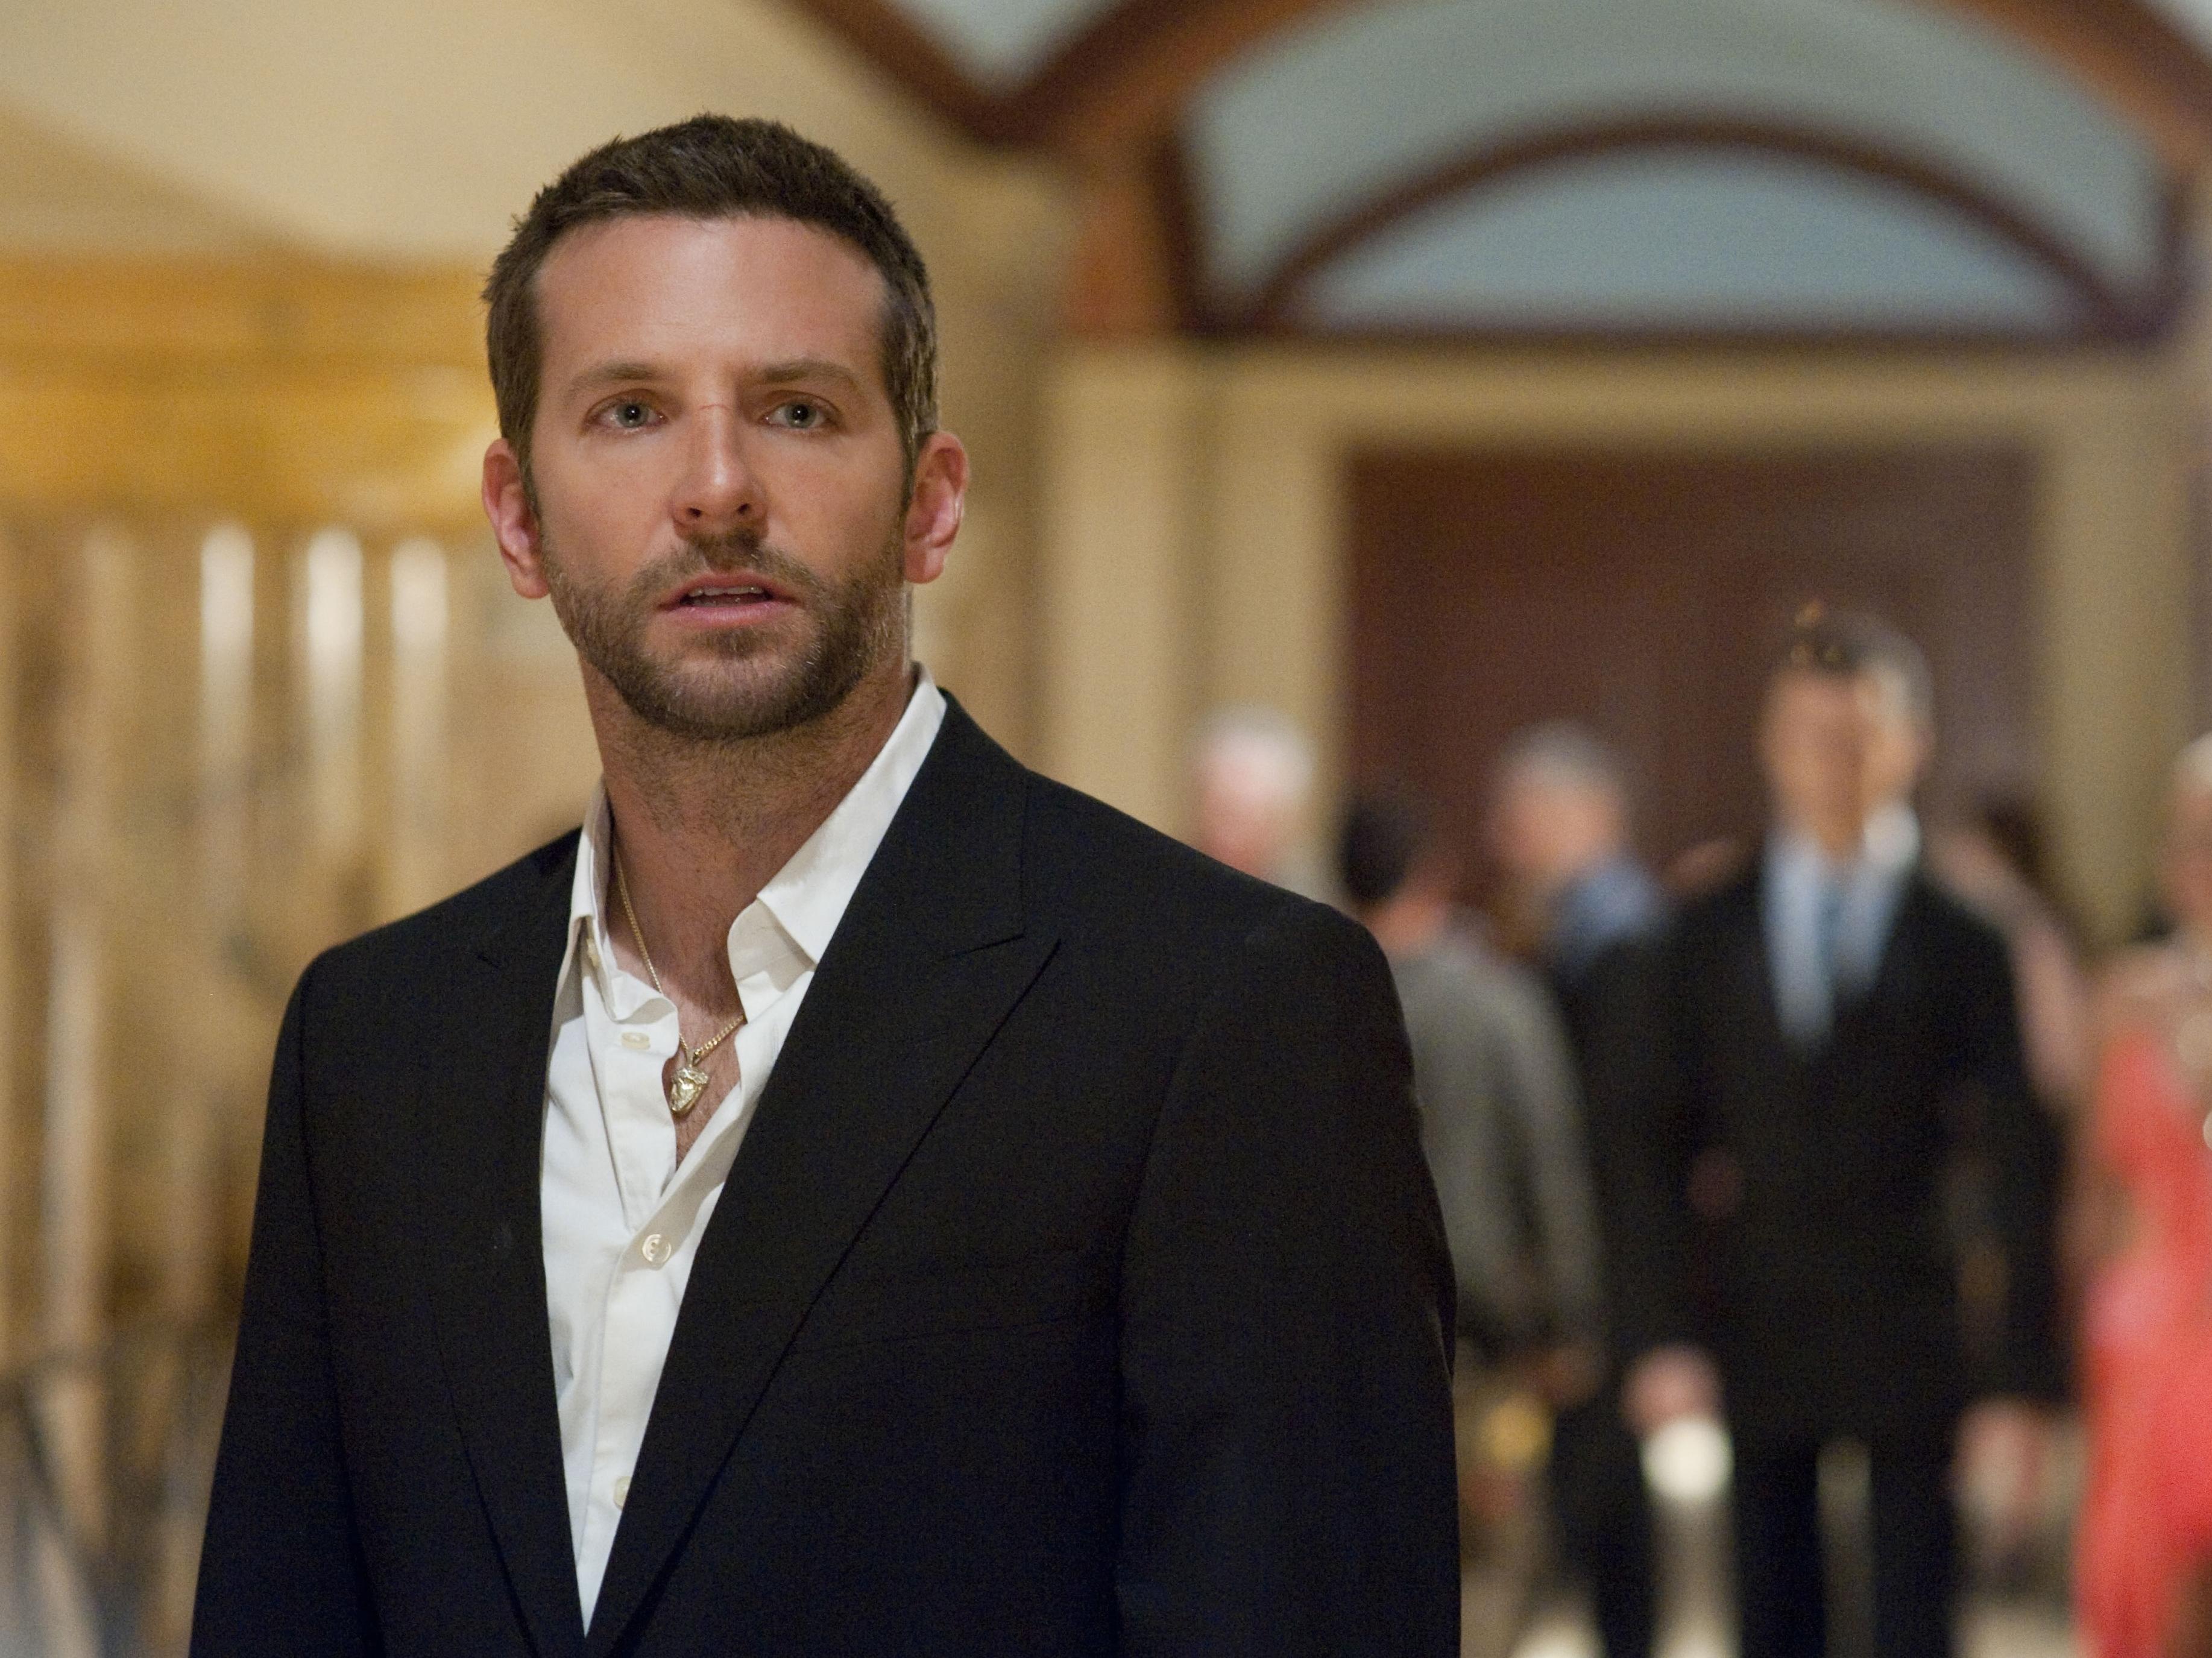 'Silver Linings Playbook' Review: Glorious Rom-Com Minus the Clichés